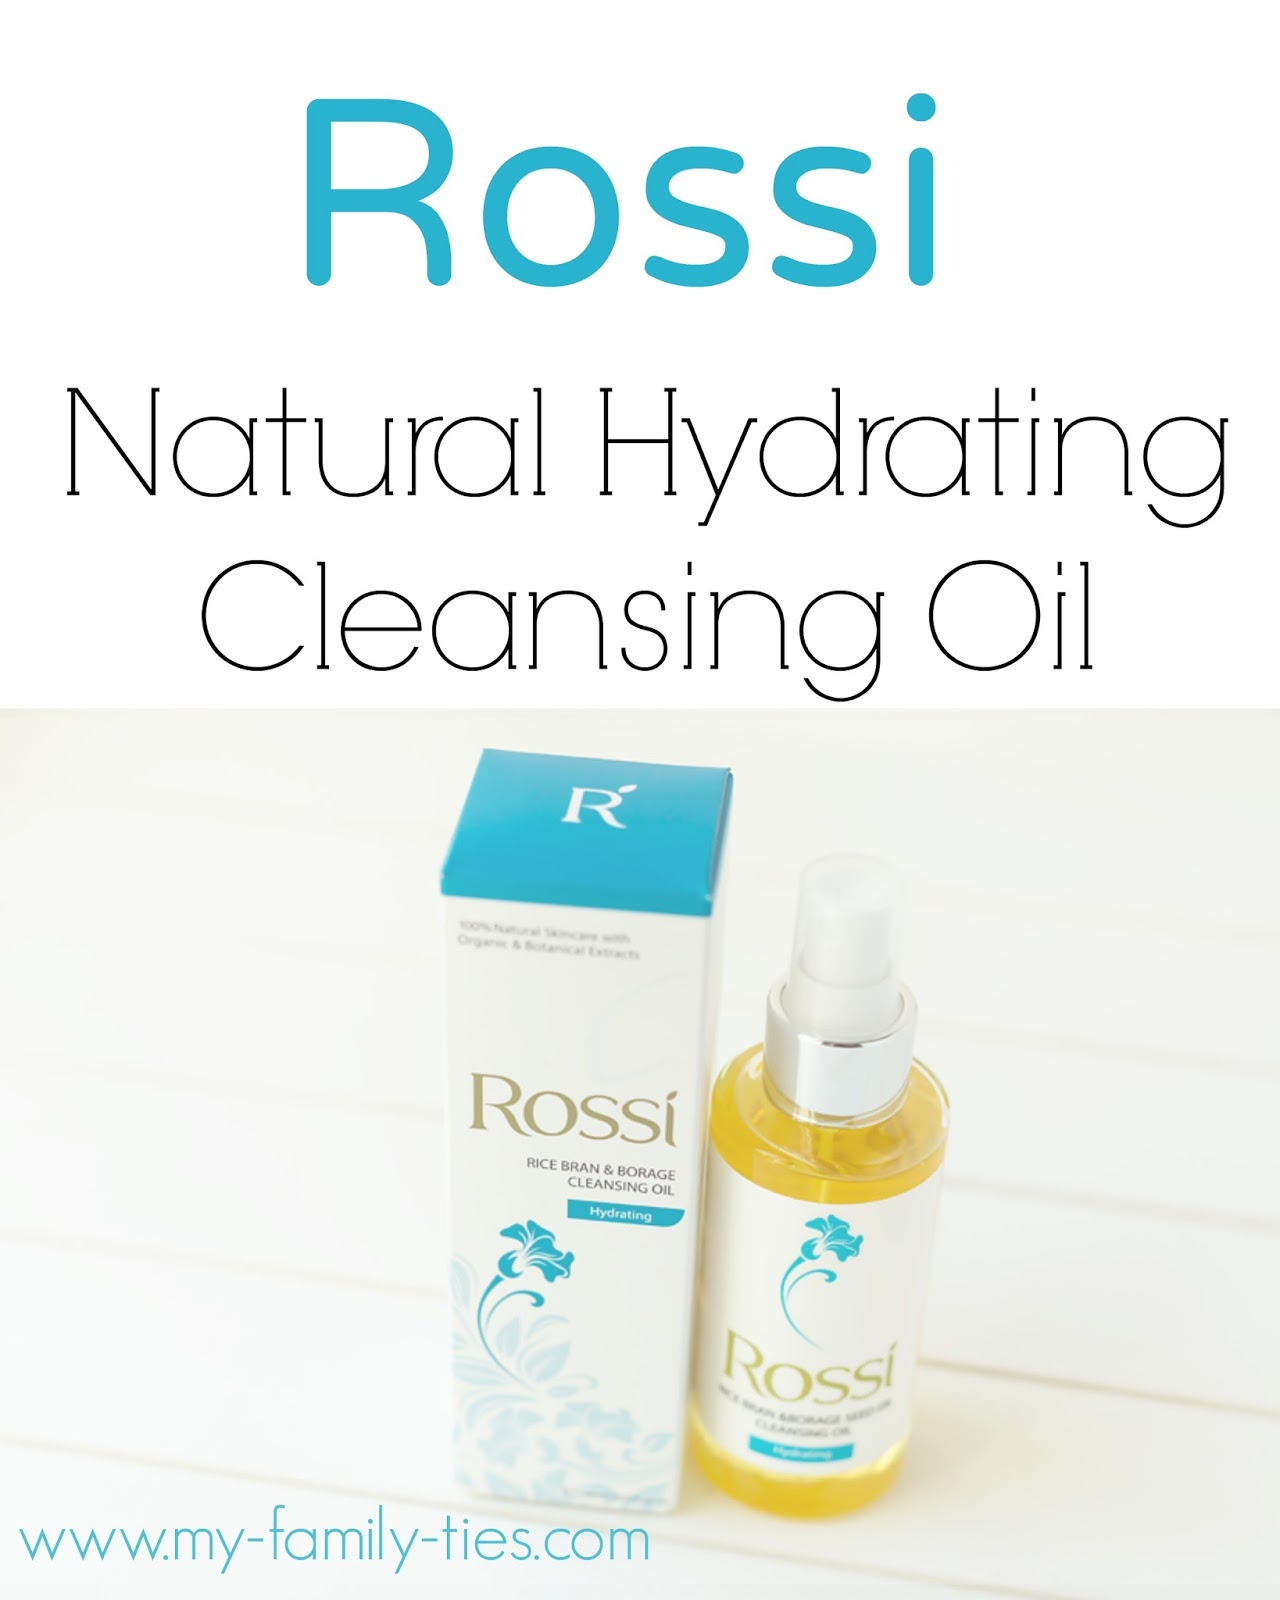 Rossi hydrating Cleanser Oil  Review  photos by My Family Ties Blog www.my-family-ties.com